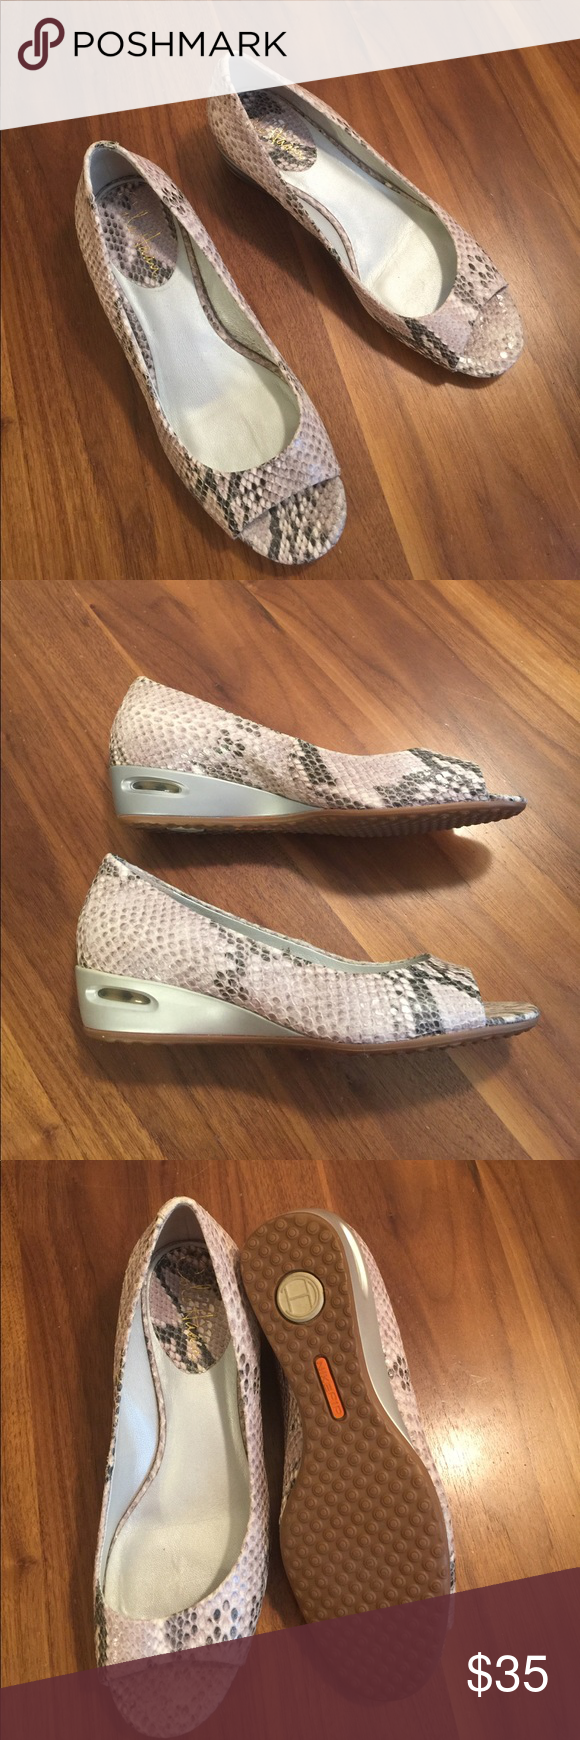 Cole Haan Tali Wedge Neutral snakeskin open toe wedges. Excellent condition. Cole Haan Shoes Wedges